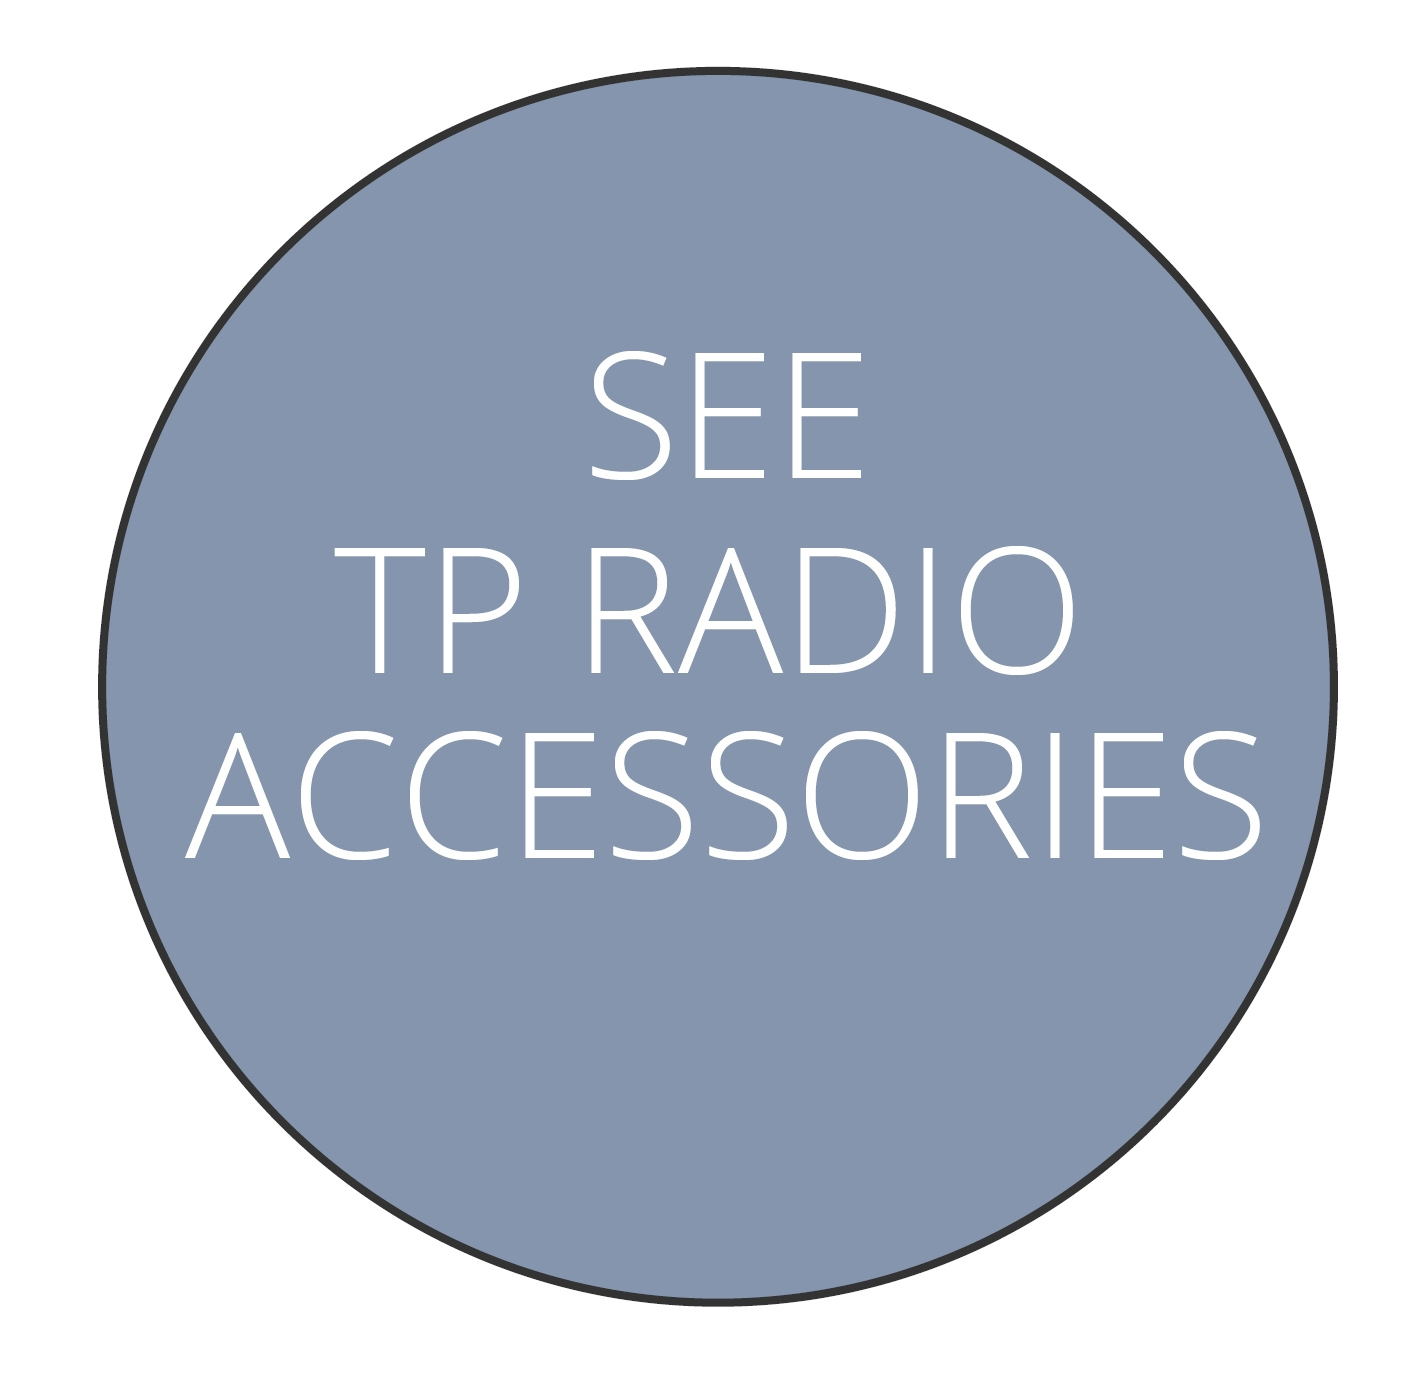 See TP Radio PMR accessories